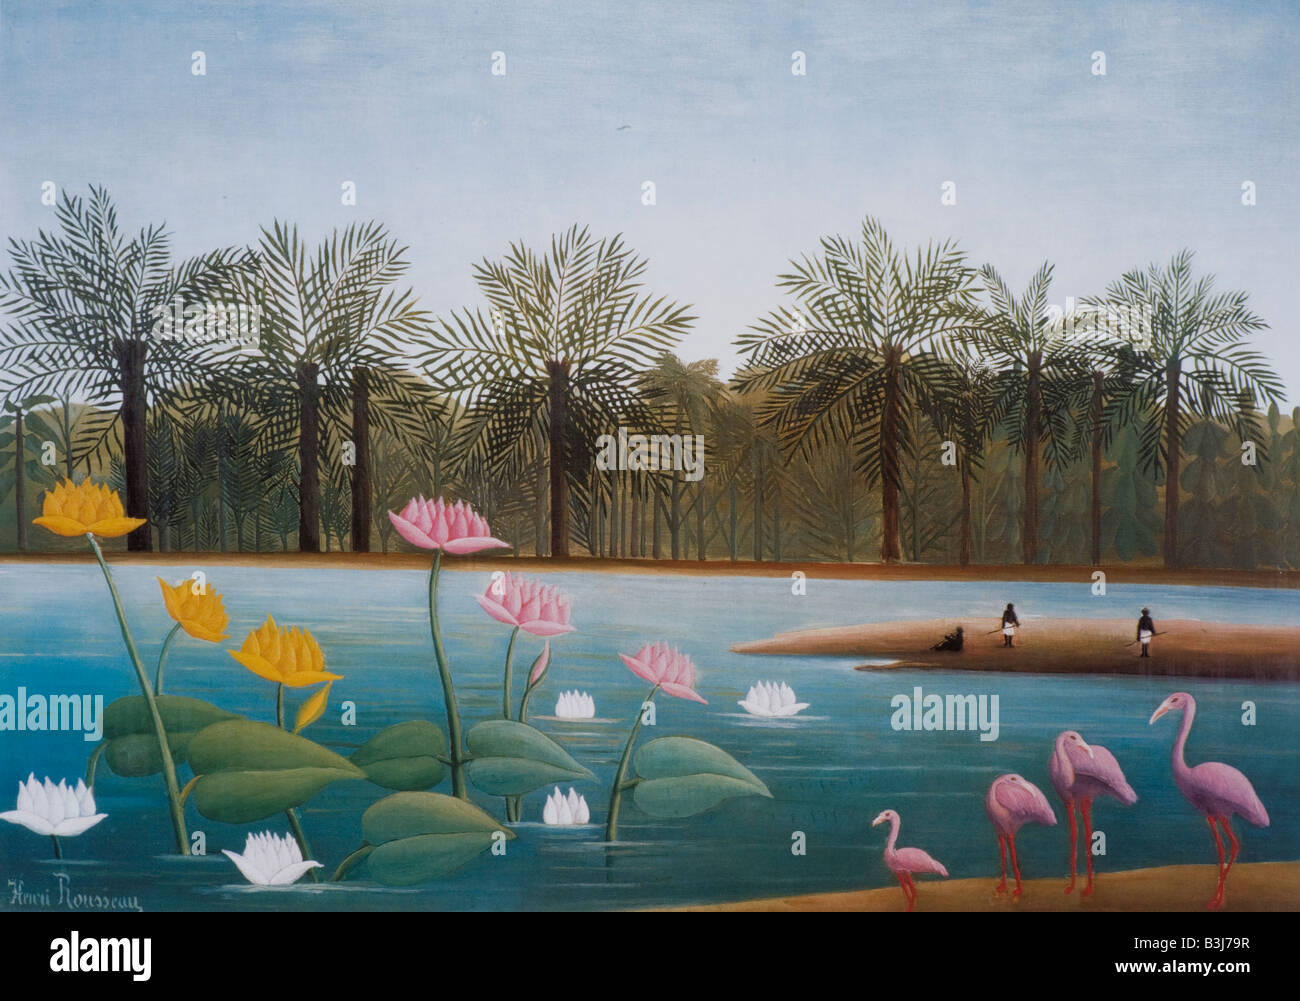 The Flamingos by Henri Rousseau 1907 - Stock Image